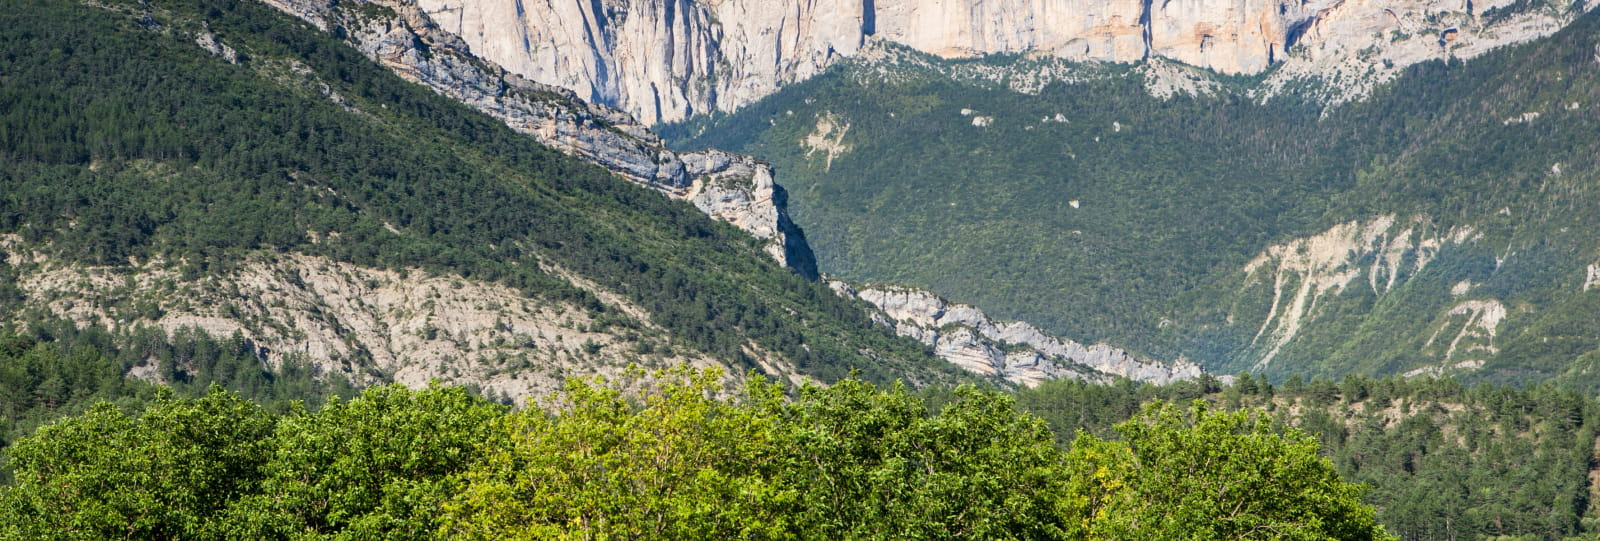 At the sources of the Drôme